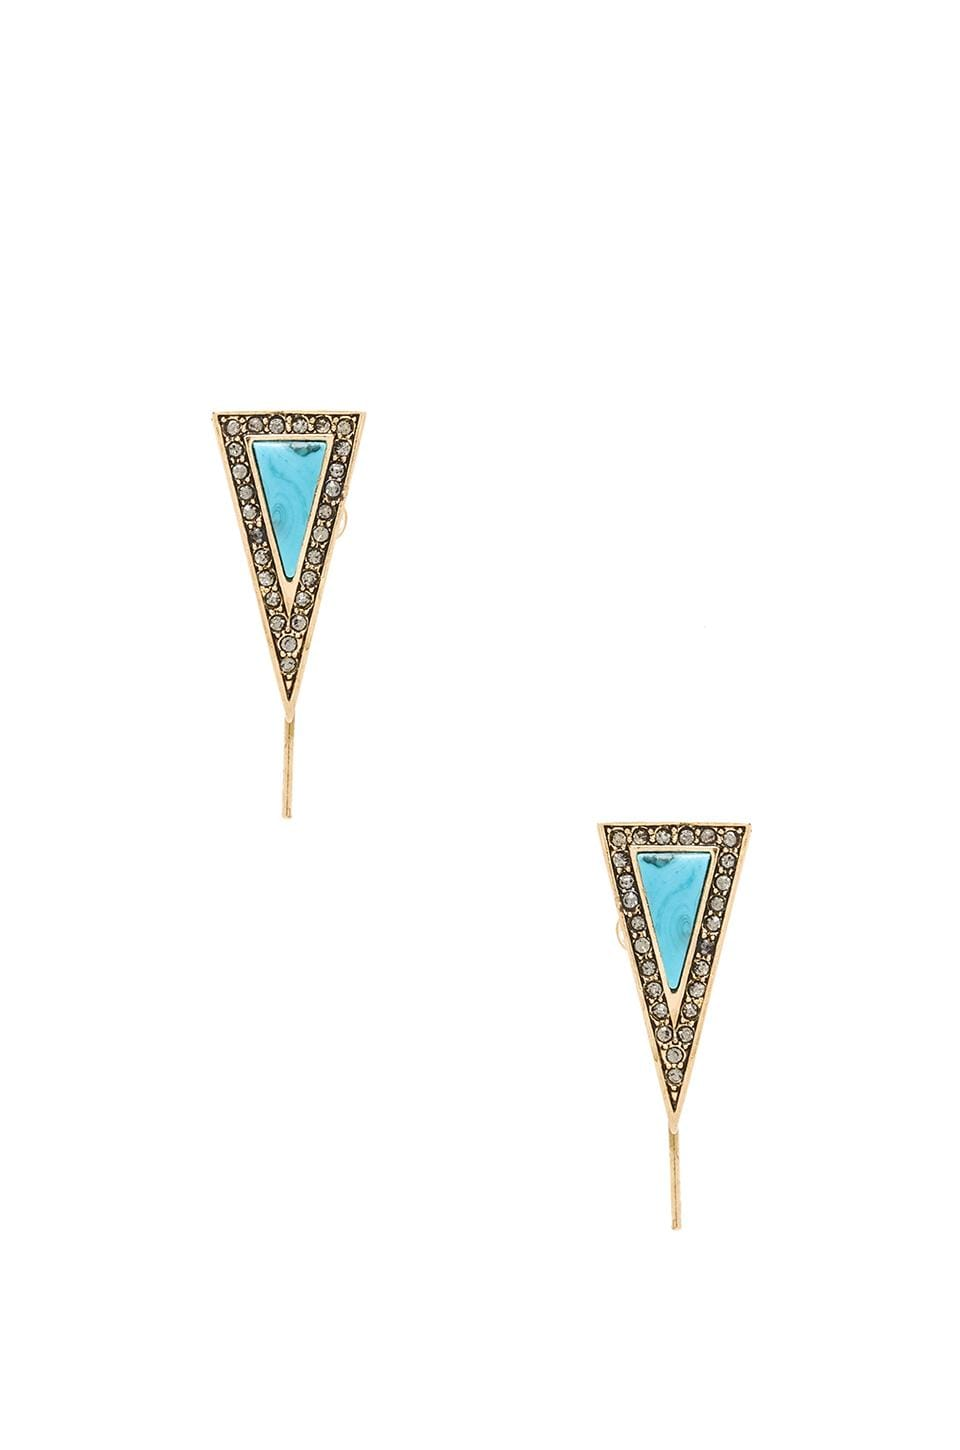 House of Harlow 1960 House of Harlow Acute Earrings in Turquoise